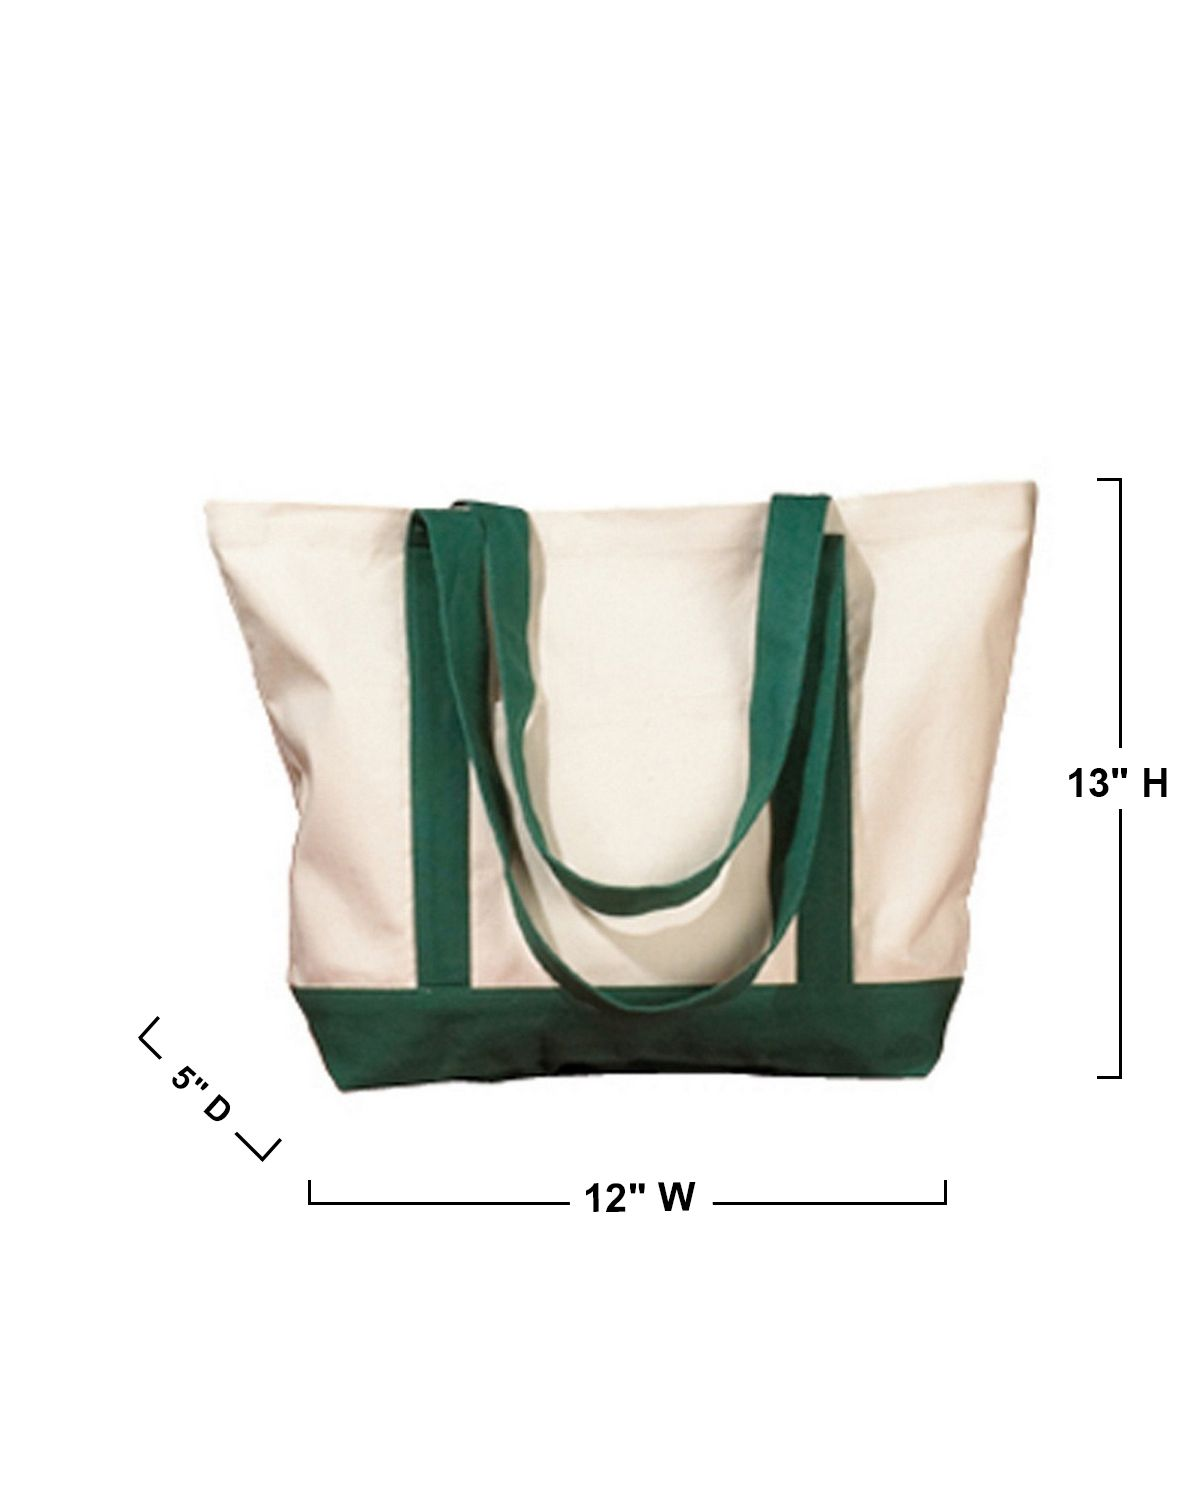 Whole Blank Canvas Tote Bags At Ed Prices